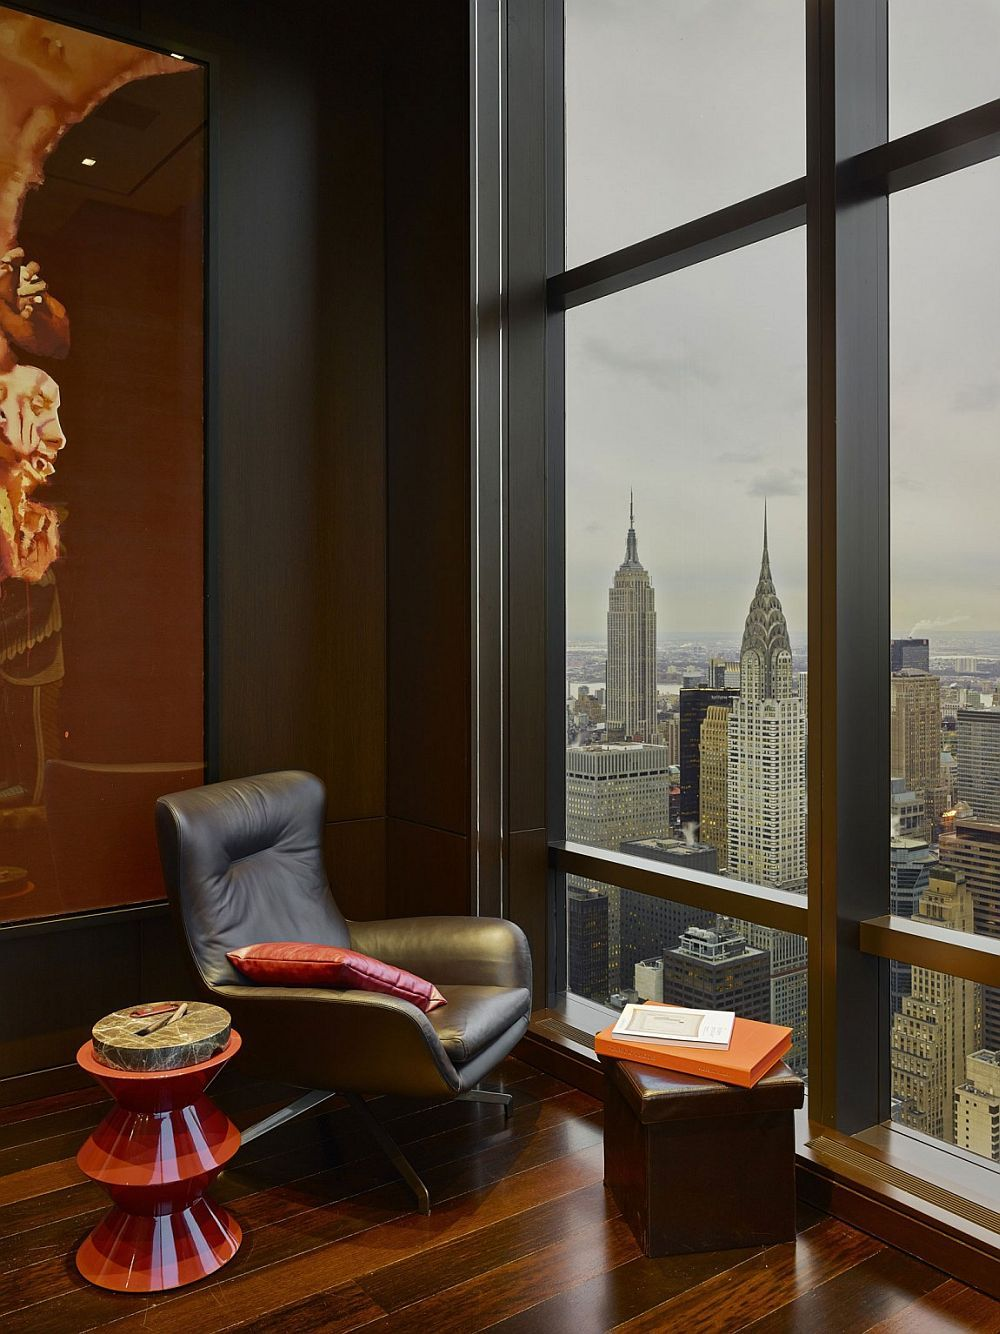 Luxury Penthouse in NYC by ODA Architects. Nyc penthouse